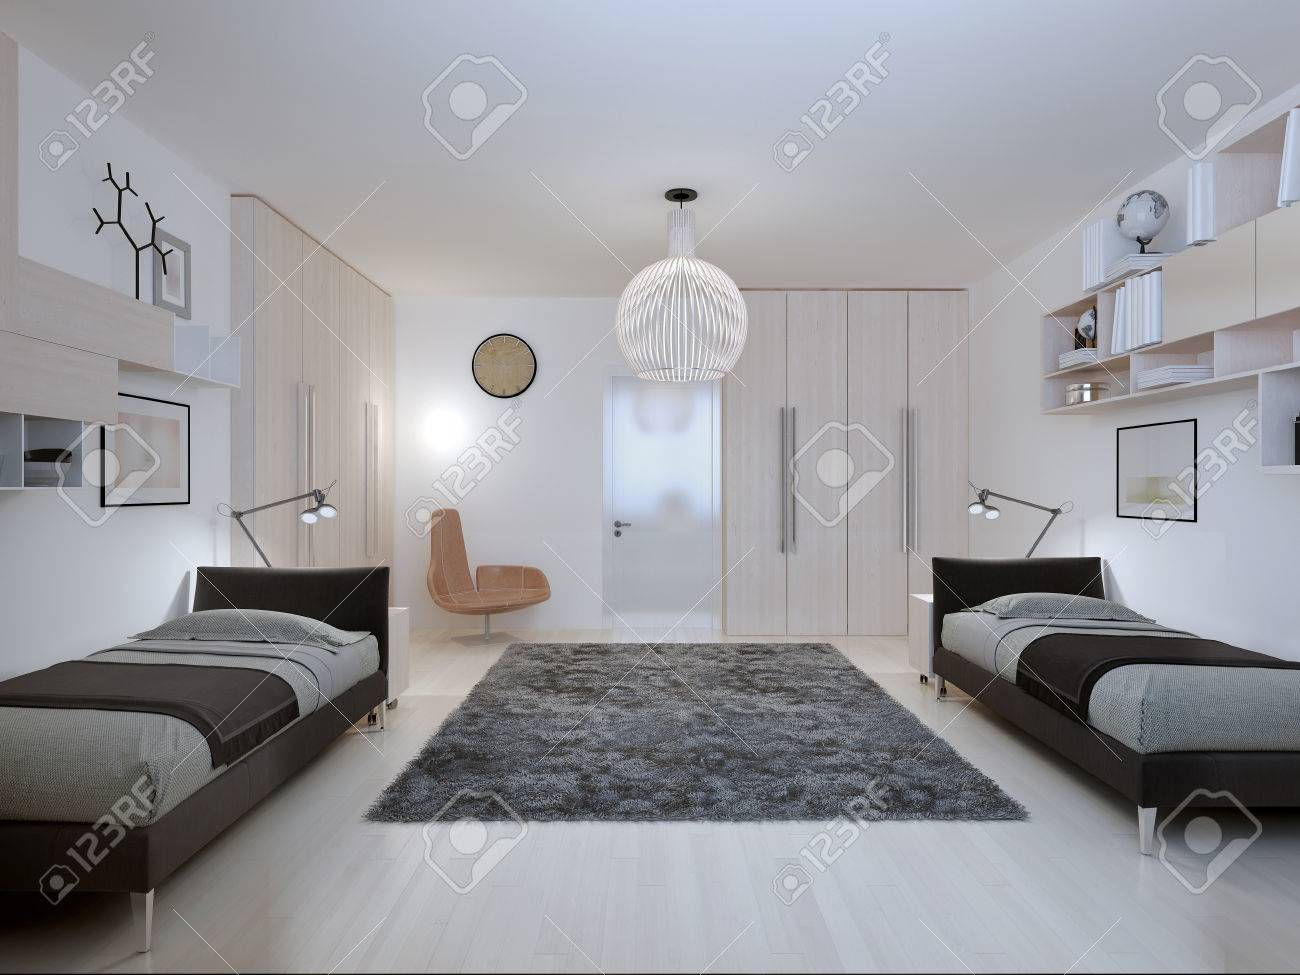 Schlafzimmer Teenager - Stock Photo